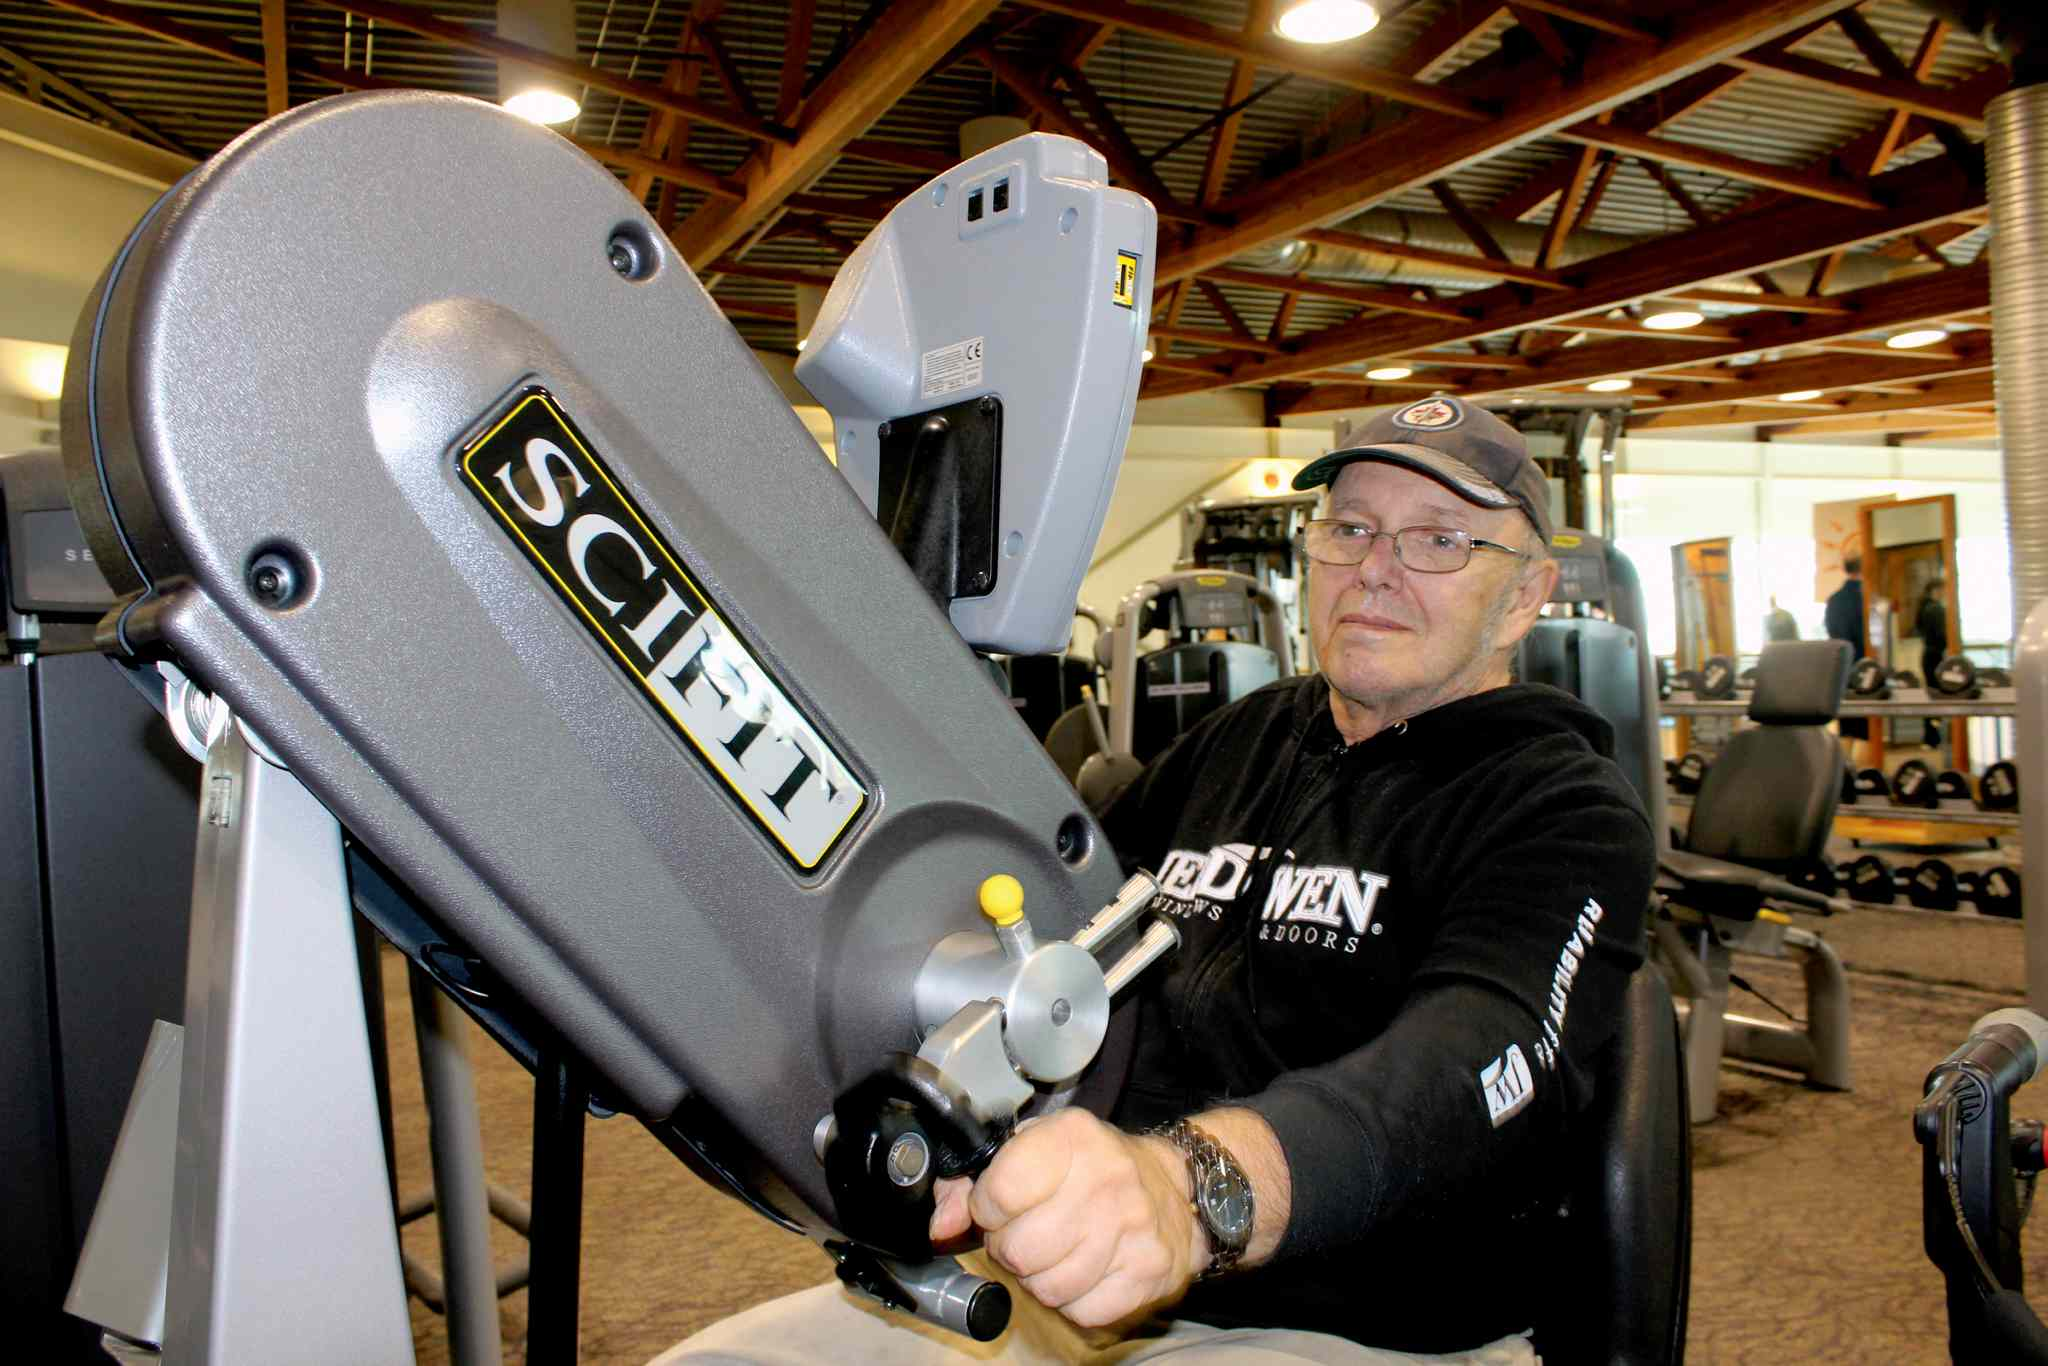 Jim Sutherland gets a workout in at the Wellness Institute medical fitness facility at Seven Oaks General Hospital. Sutherland has been a member of the facility since suffering a heart attack in December 2008.